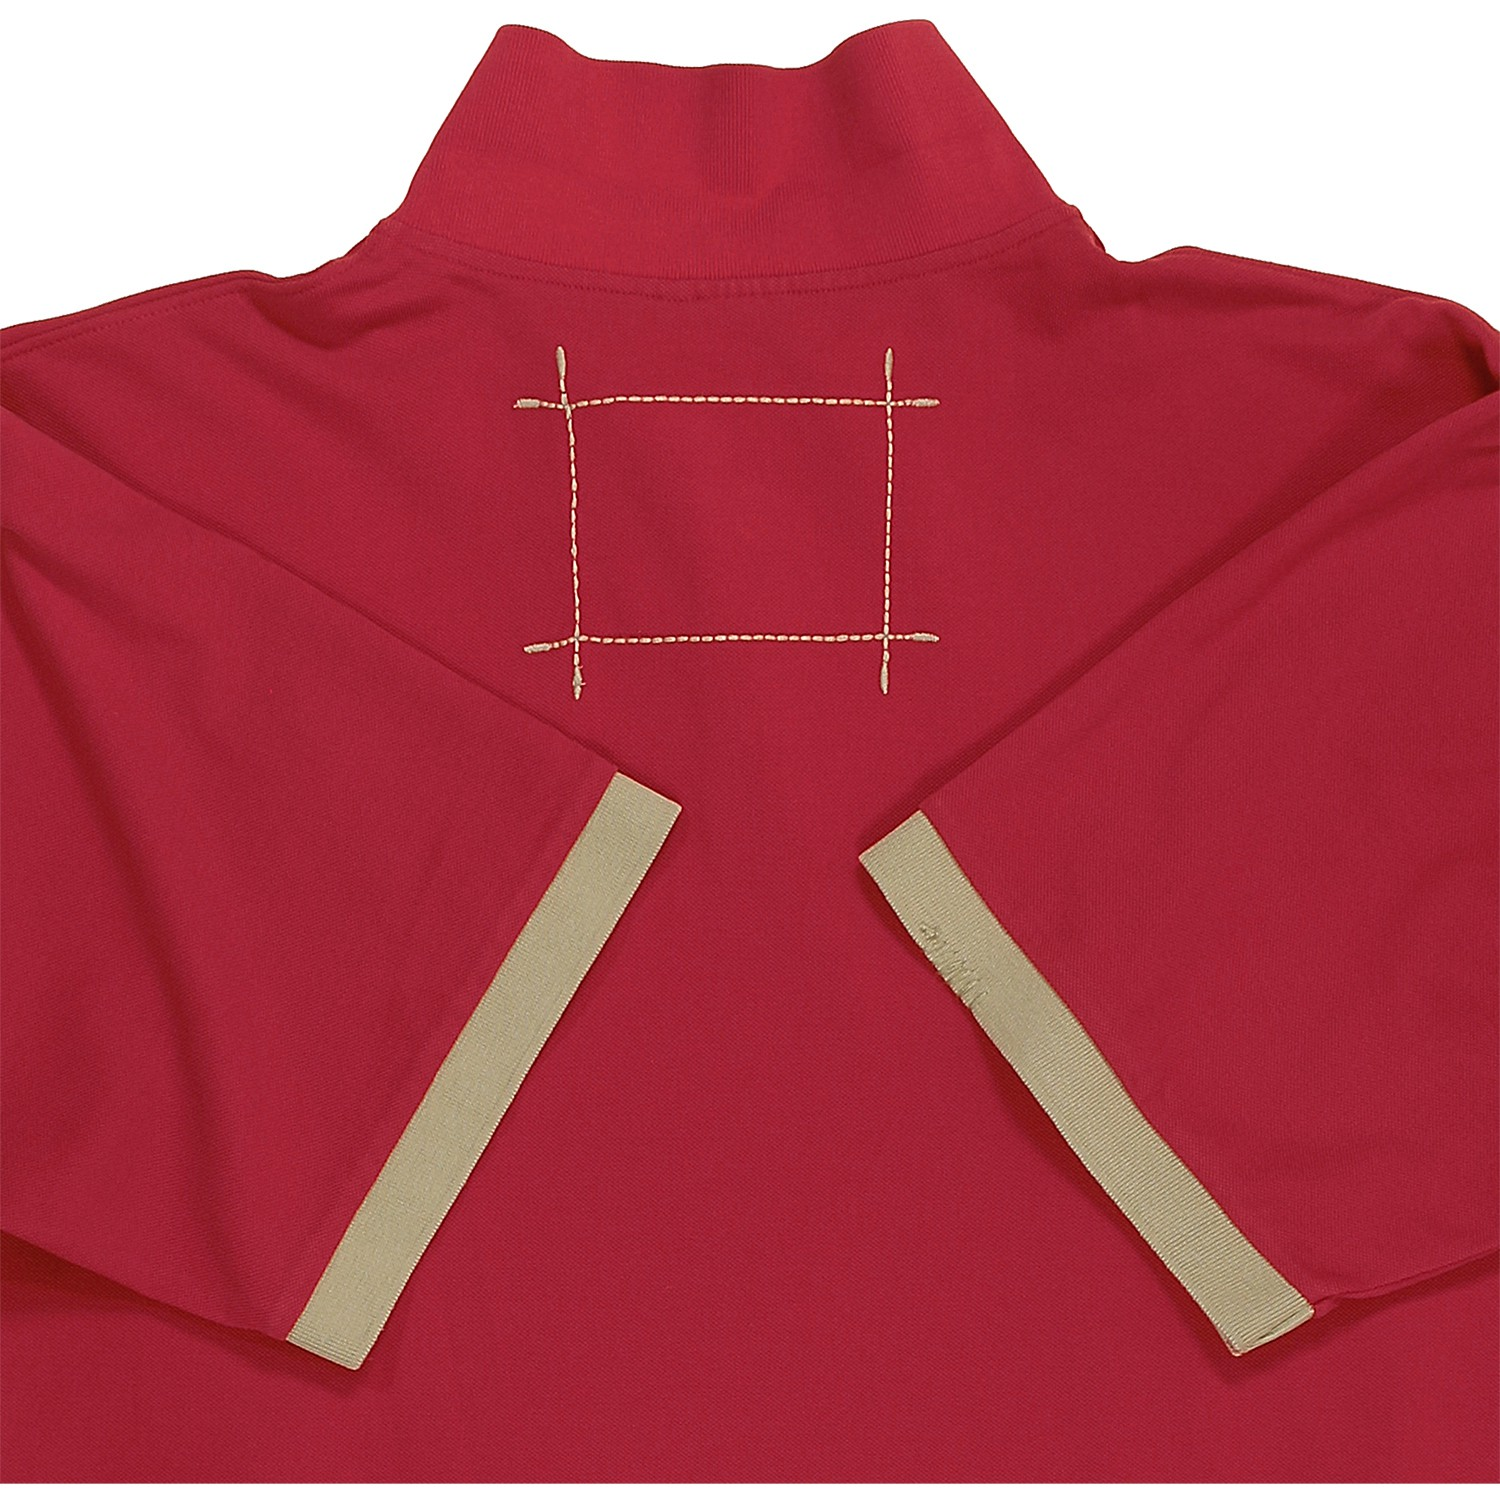 Detail Image to Red Poloshirt in oversize up to 6XL